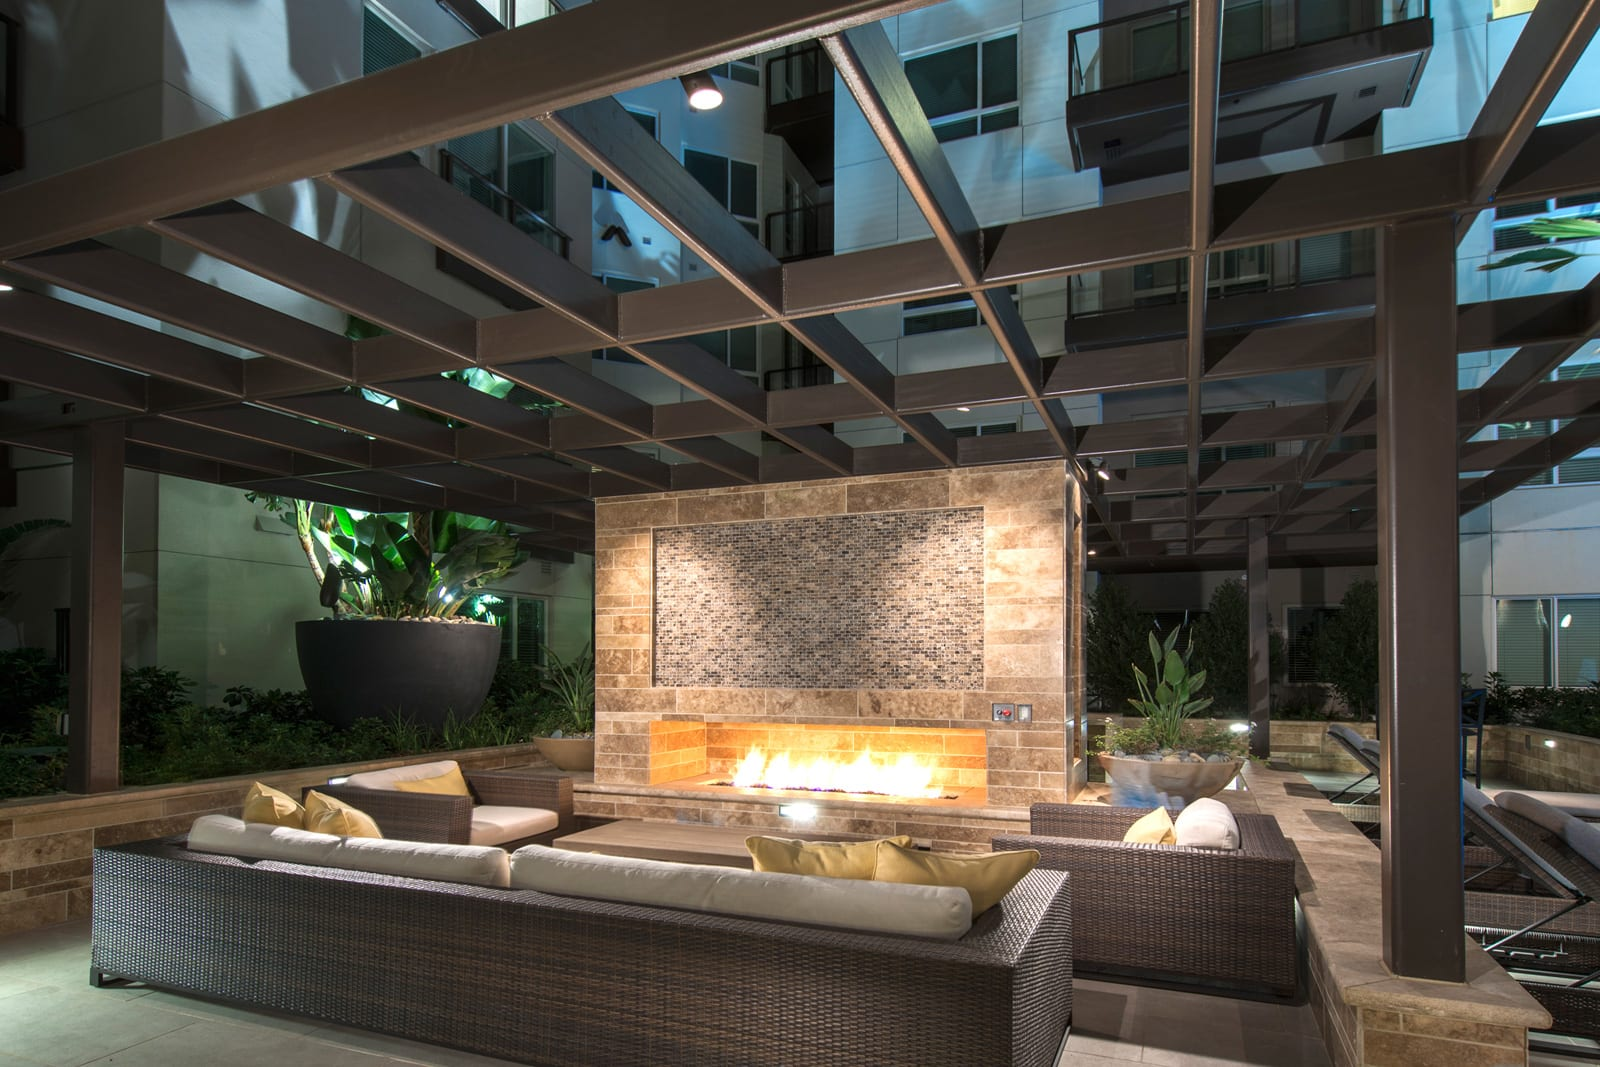 Outdoor Fireplace at 1000 Grand by Windsor, 90015, CA